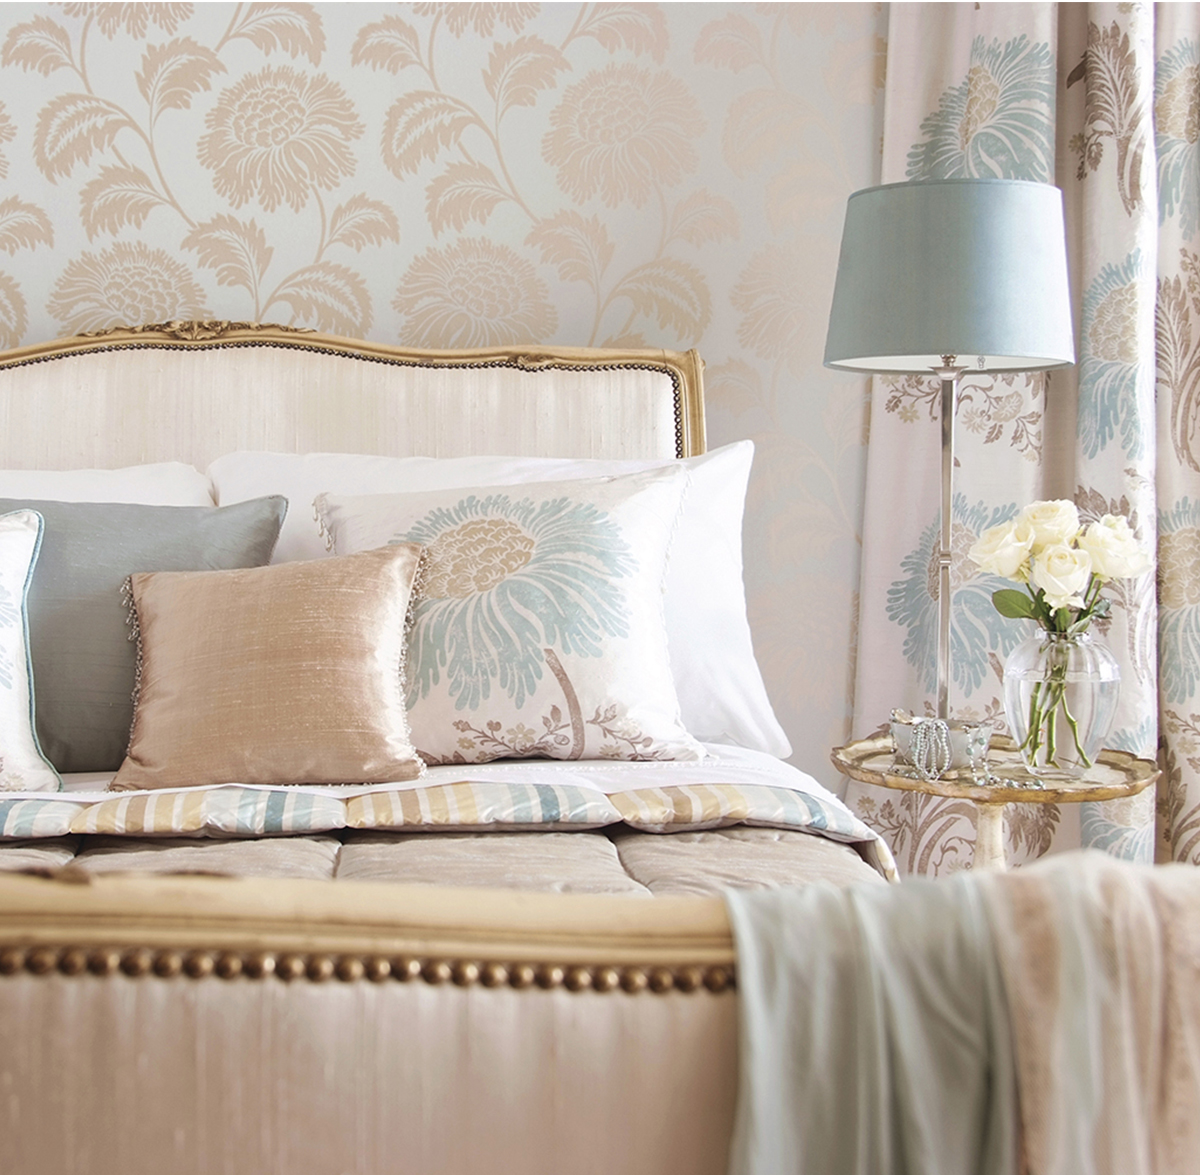 Stunning Furnishings - From custom bedding to pillows, we believe the smallest details make the biggest difference. We look forward to helping you make your next soft furnishing design a reality.